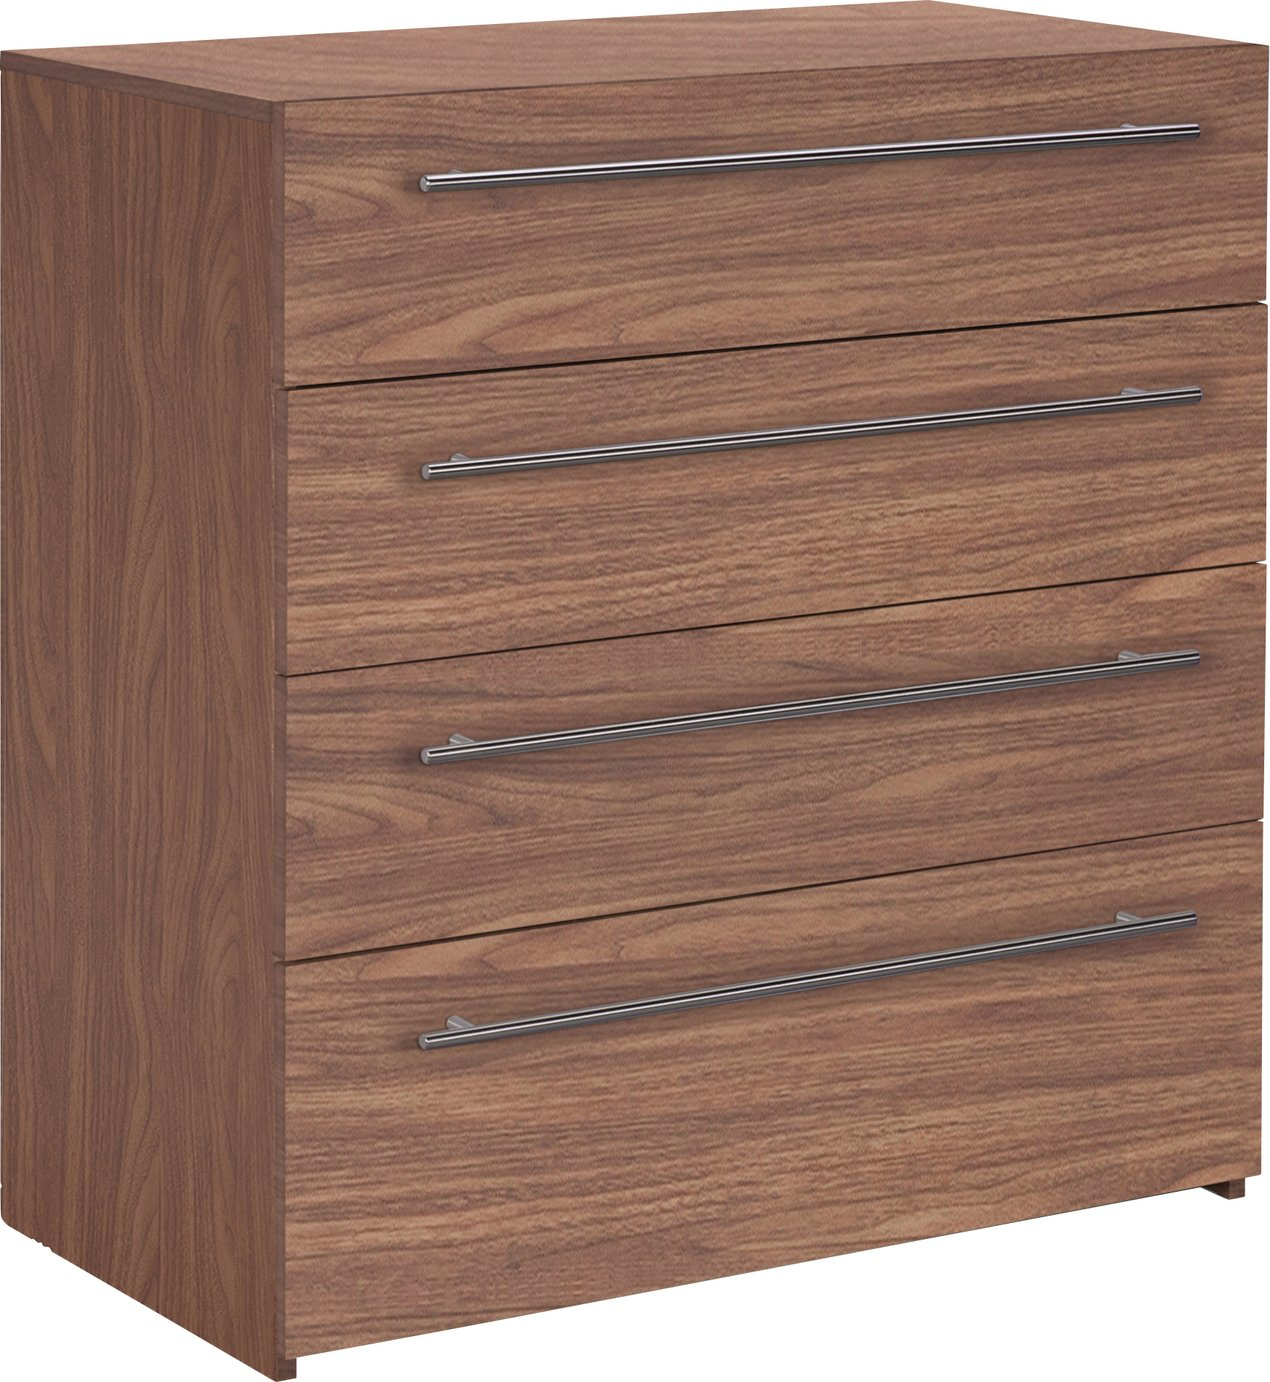 Hygena Atlas 4 Drawer Chest - Walnut Effect